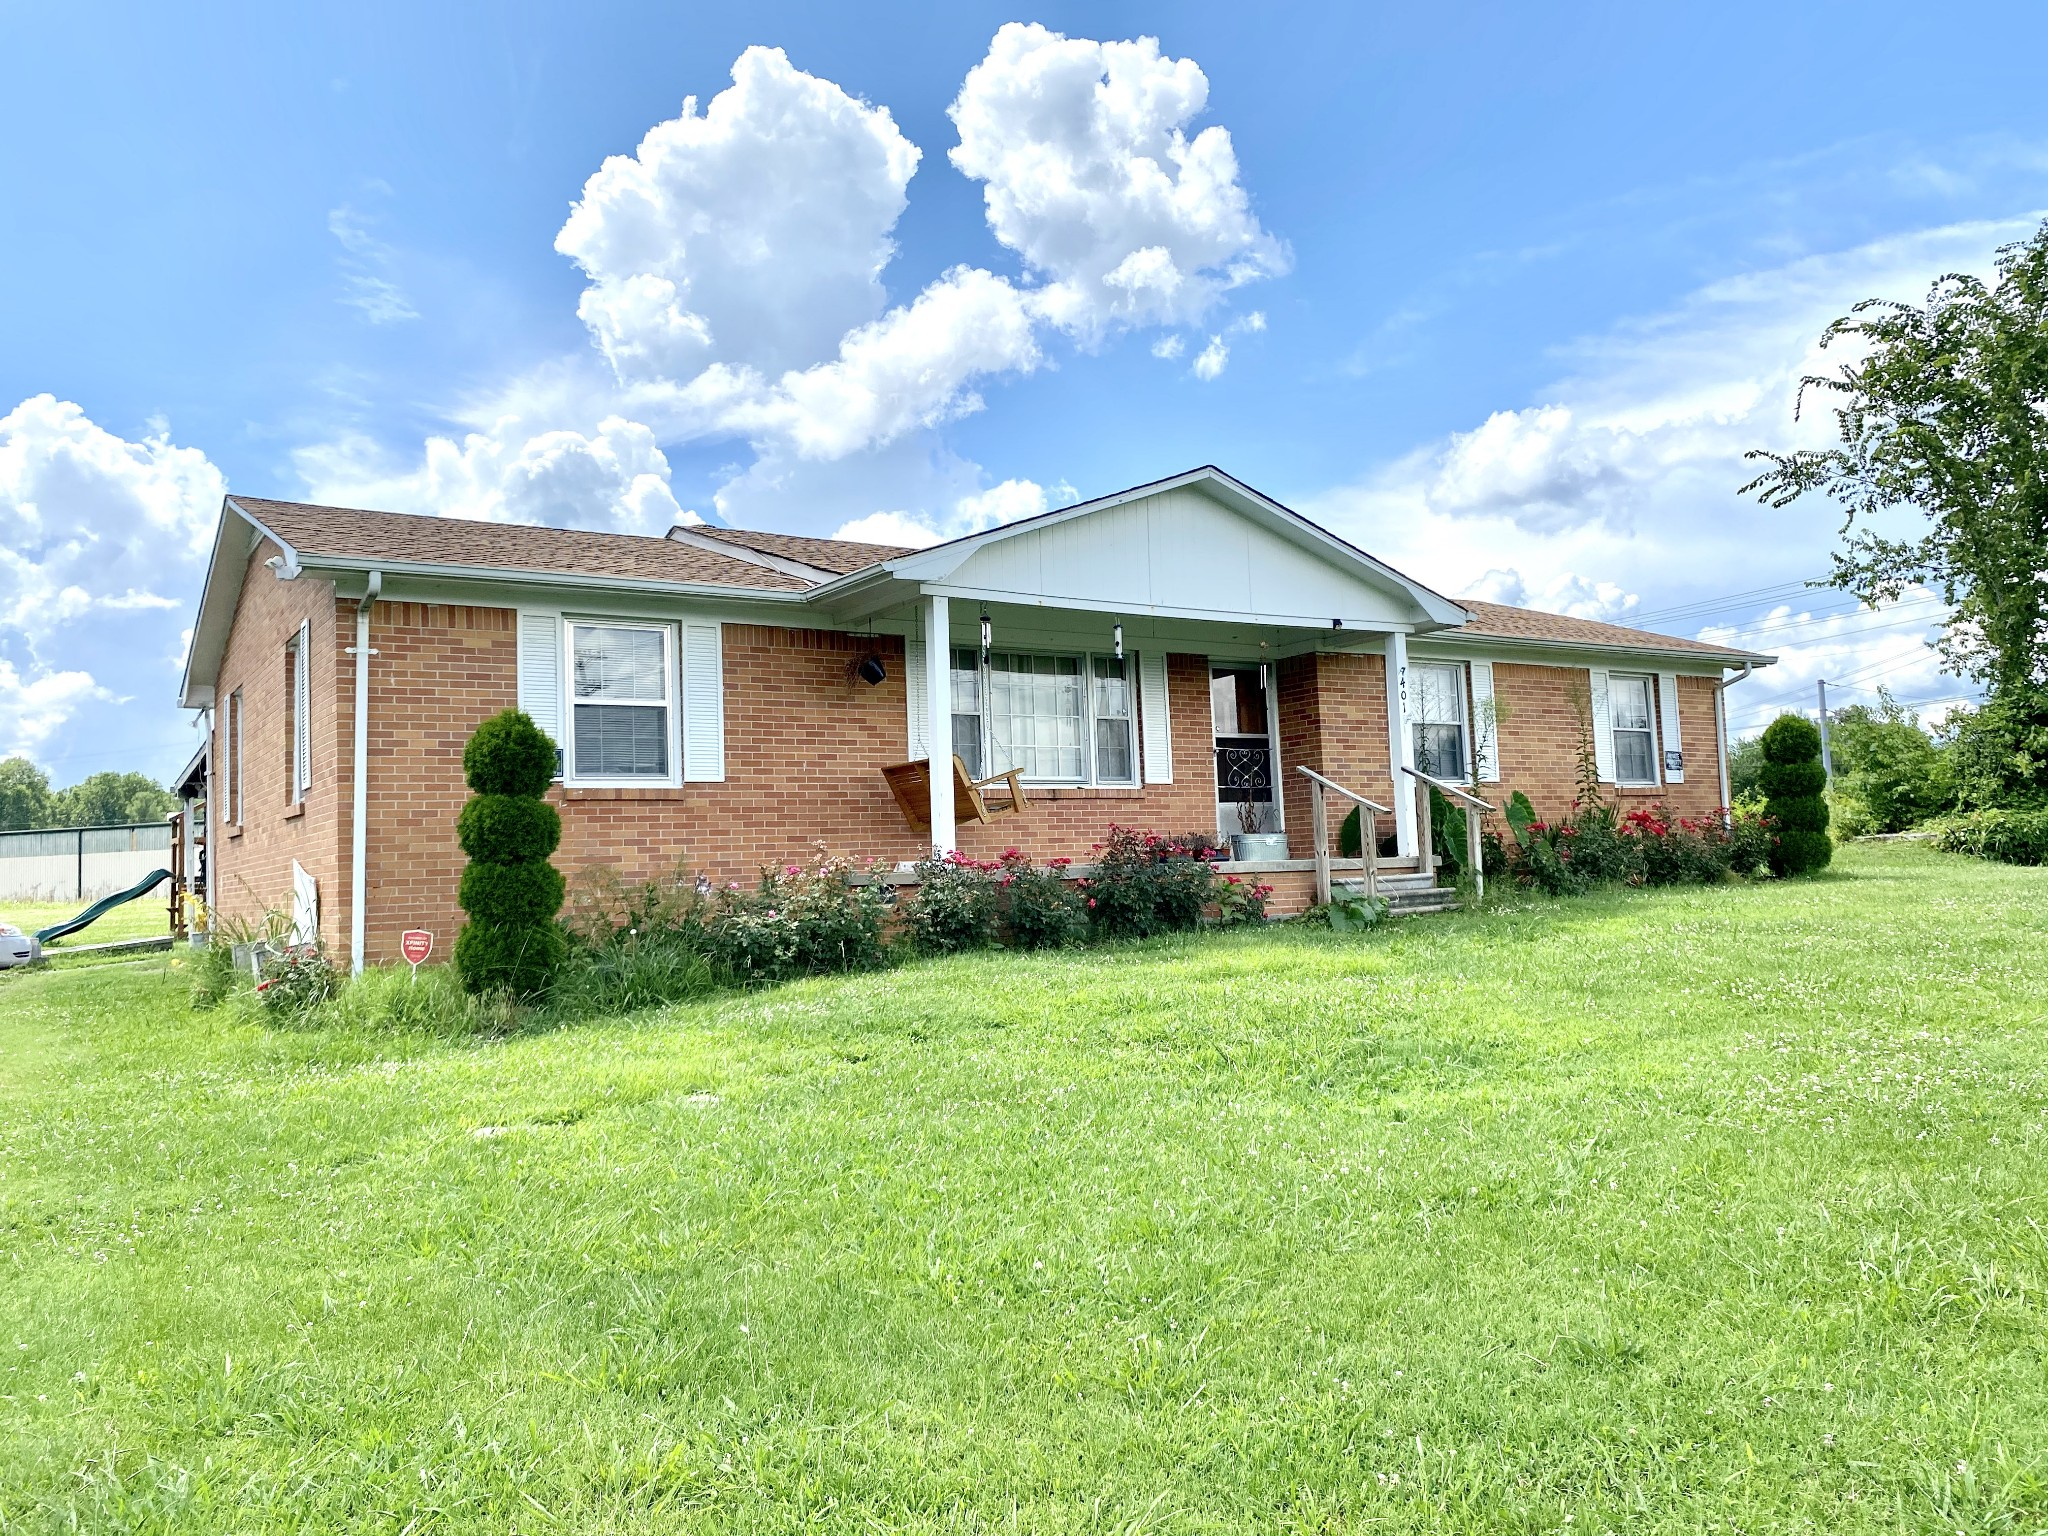 401 Whaley St Property Photo - Smithville, TN real estate listing